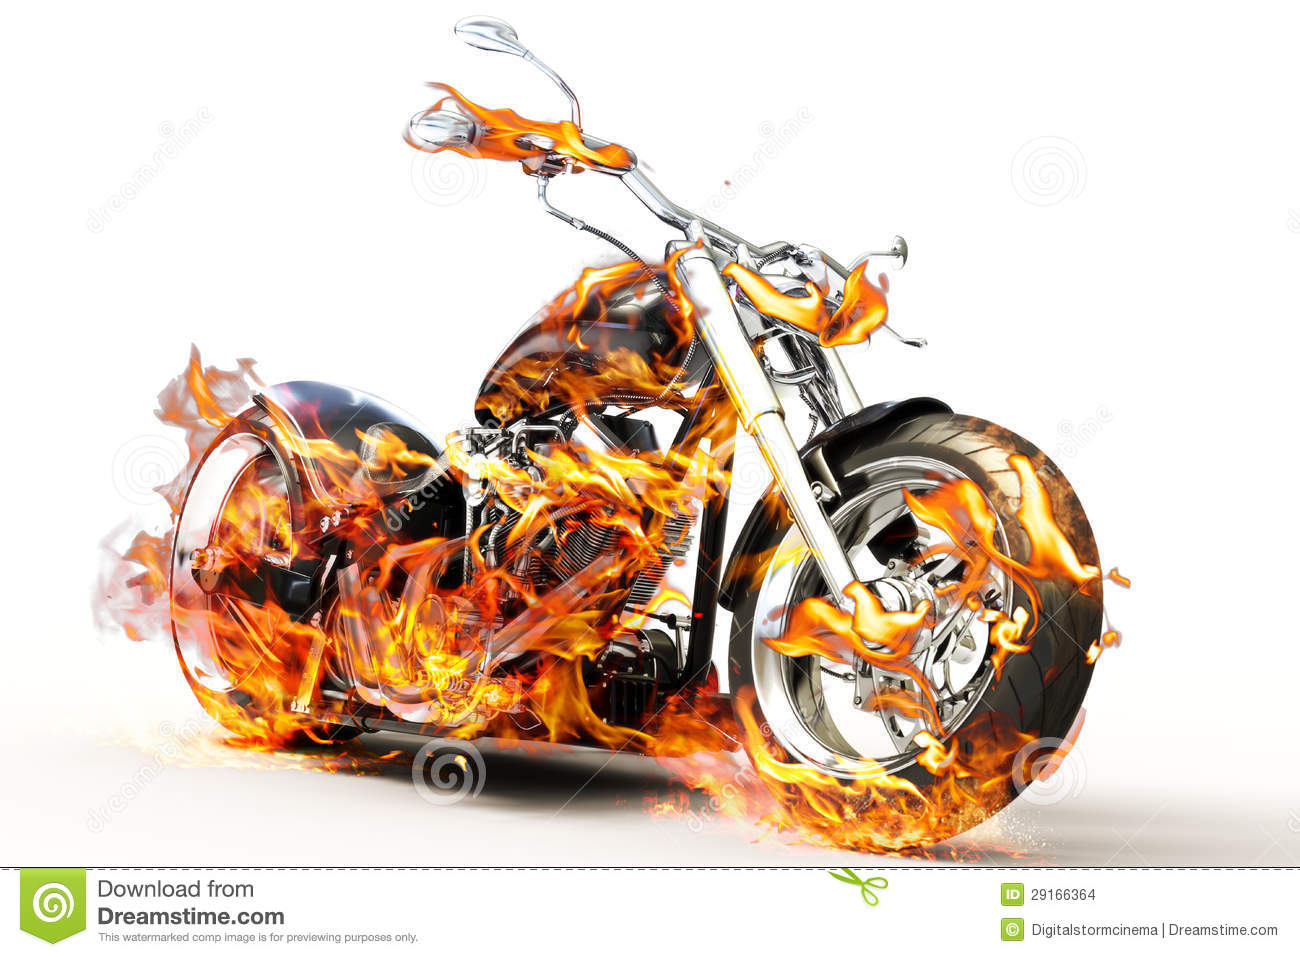 motorcycle fire pictures  Fire bike stock illustration. Illustration of headlight - 29166364